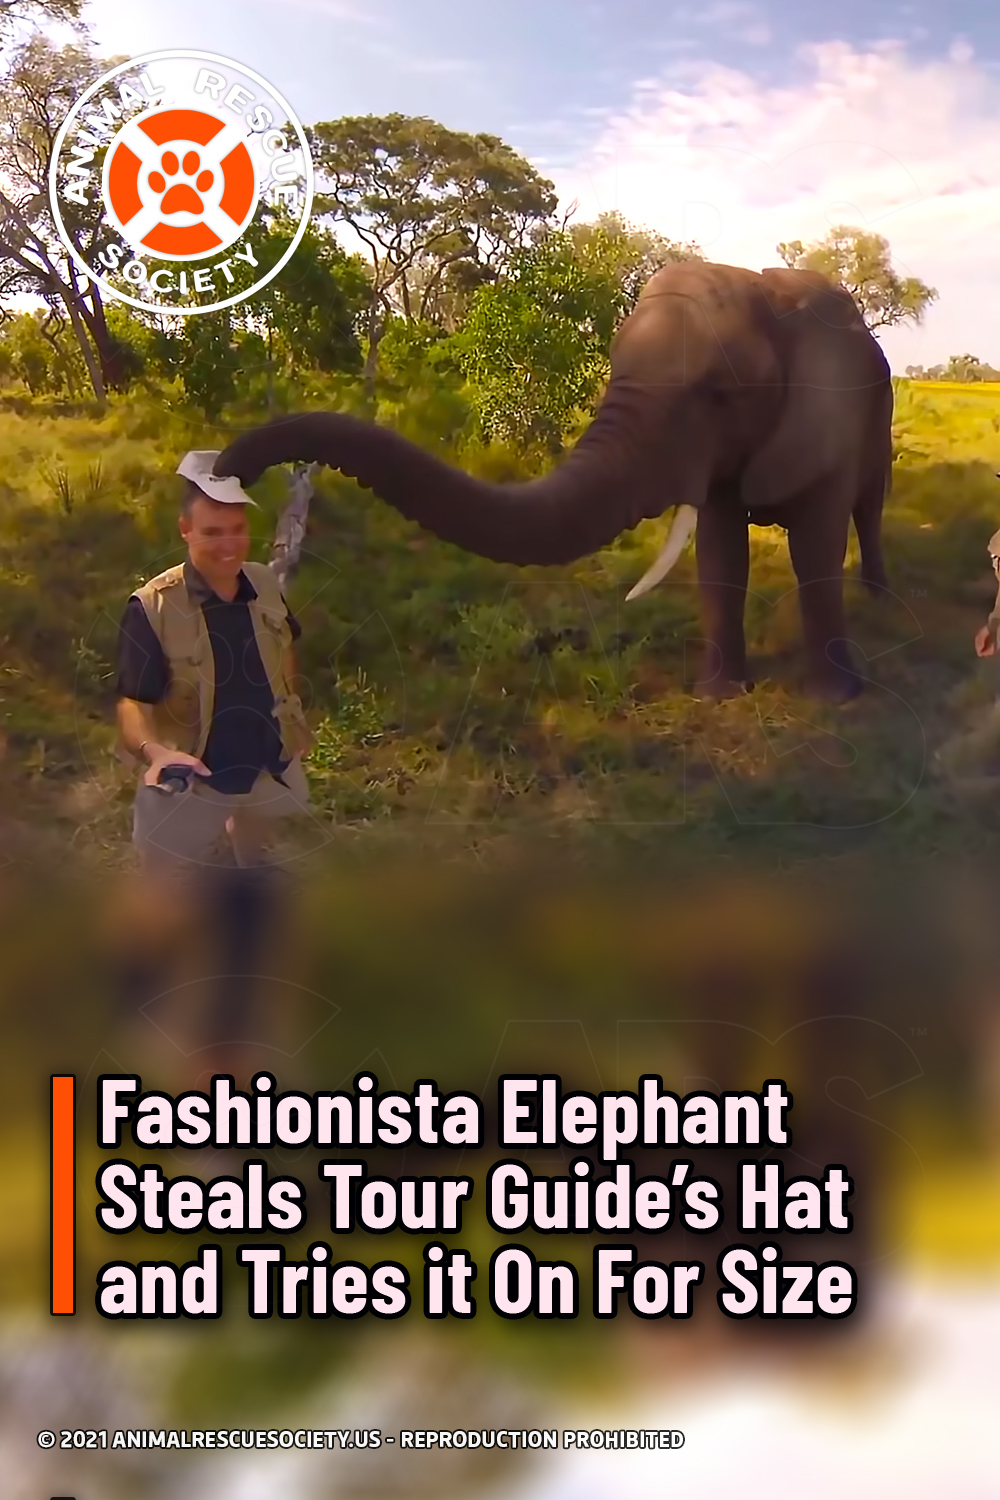 Fashionista Elephant Steals Tour Guide's Hat and Tries it On For Size